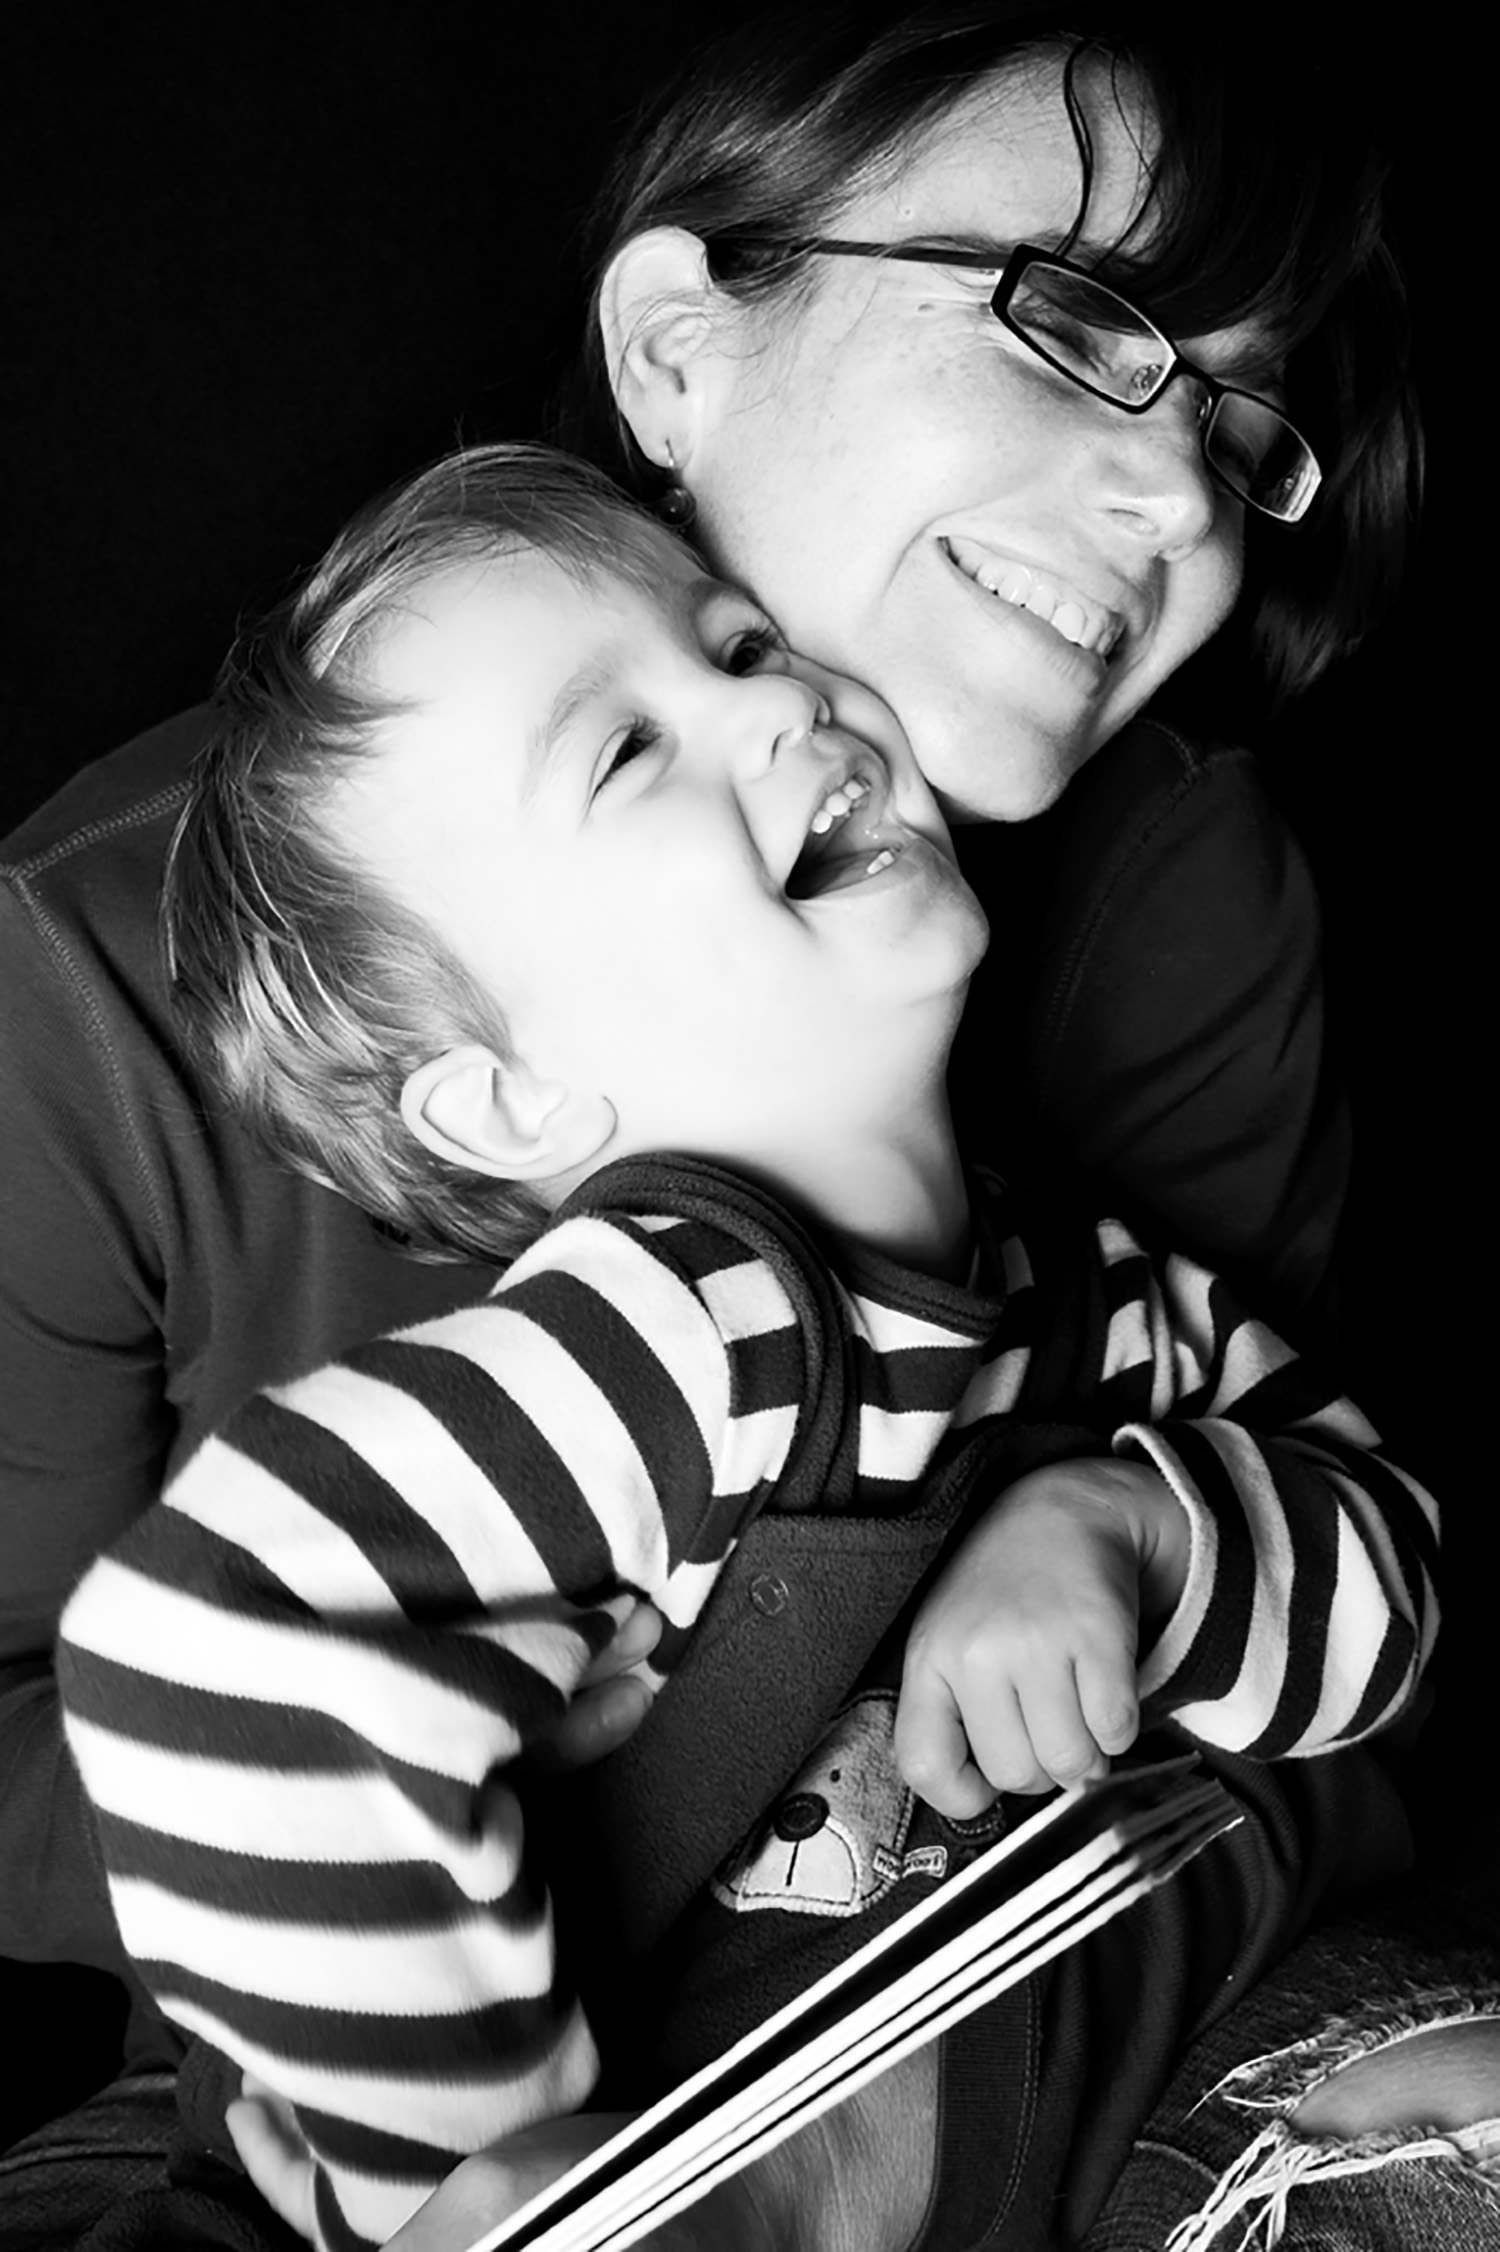 jma-photography-mother-son-laughing.jpg